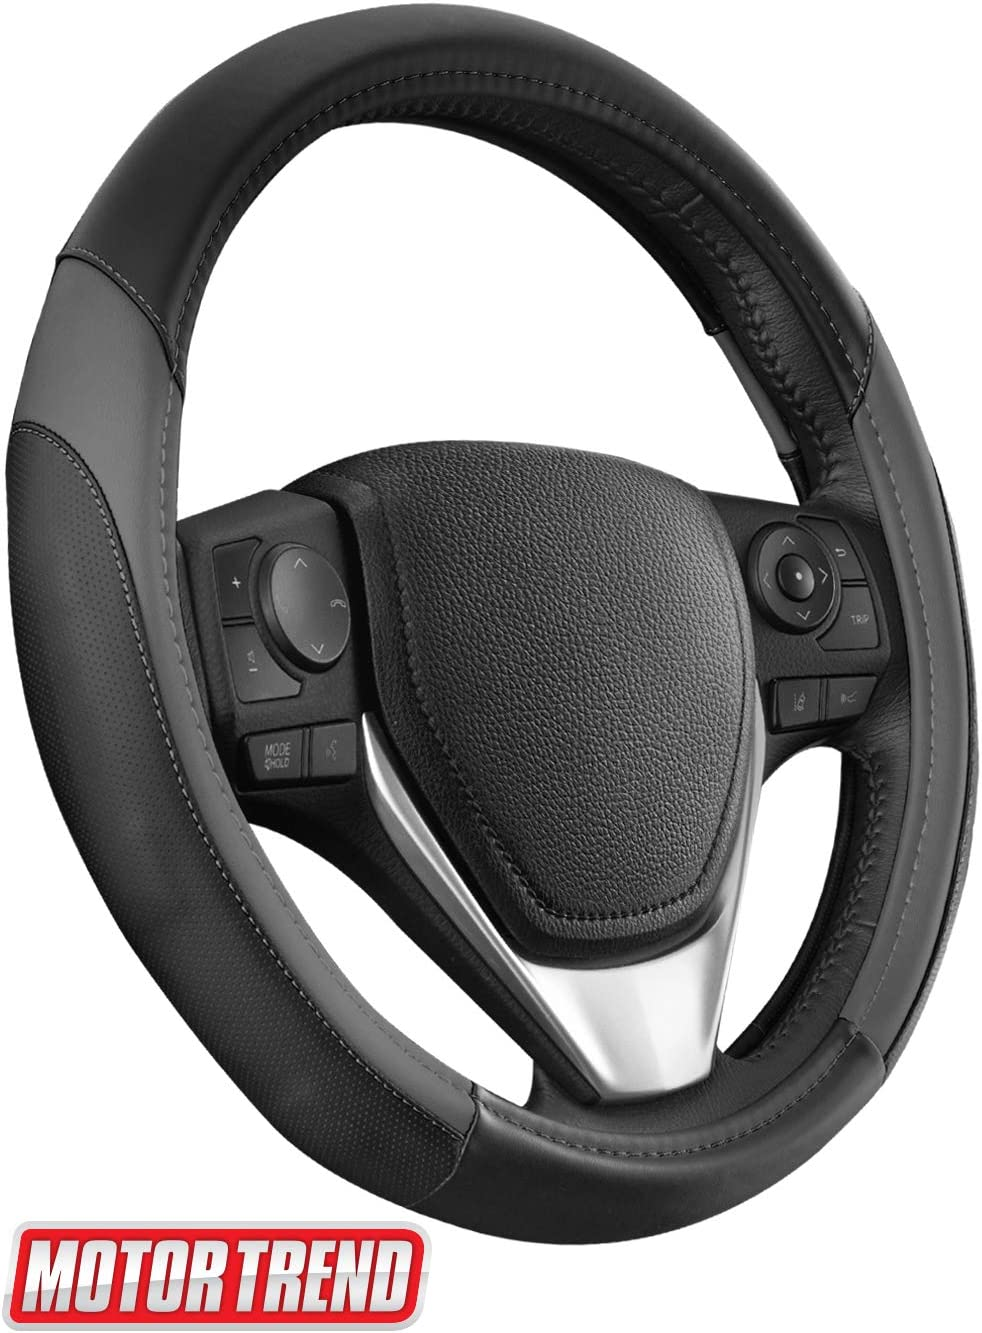 Motor Trend SW-814 Dark Gray + Black Sport Drive Perforated Leather Steering Wheel Cover with Contrast Stitching-Universal Fit for Standard Sizes 14.5 15 15.5 inches